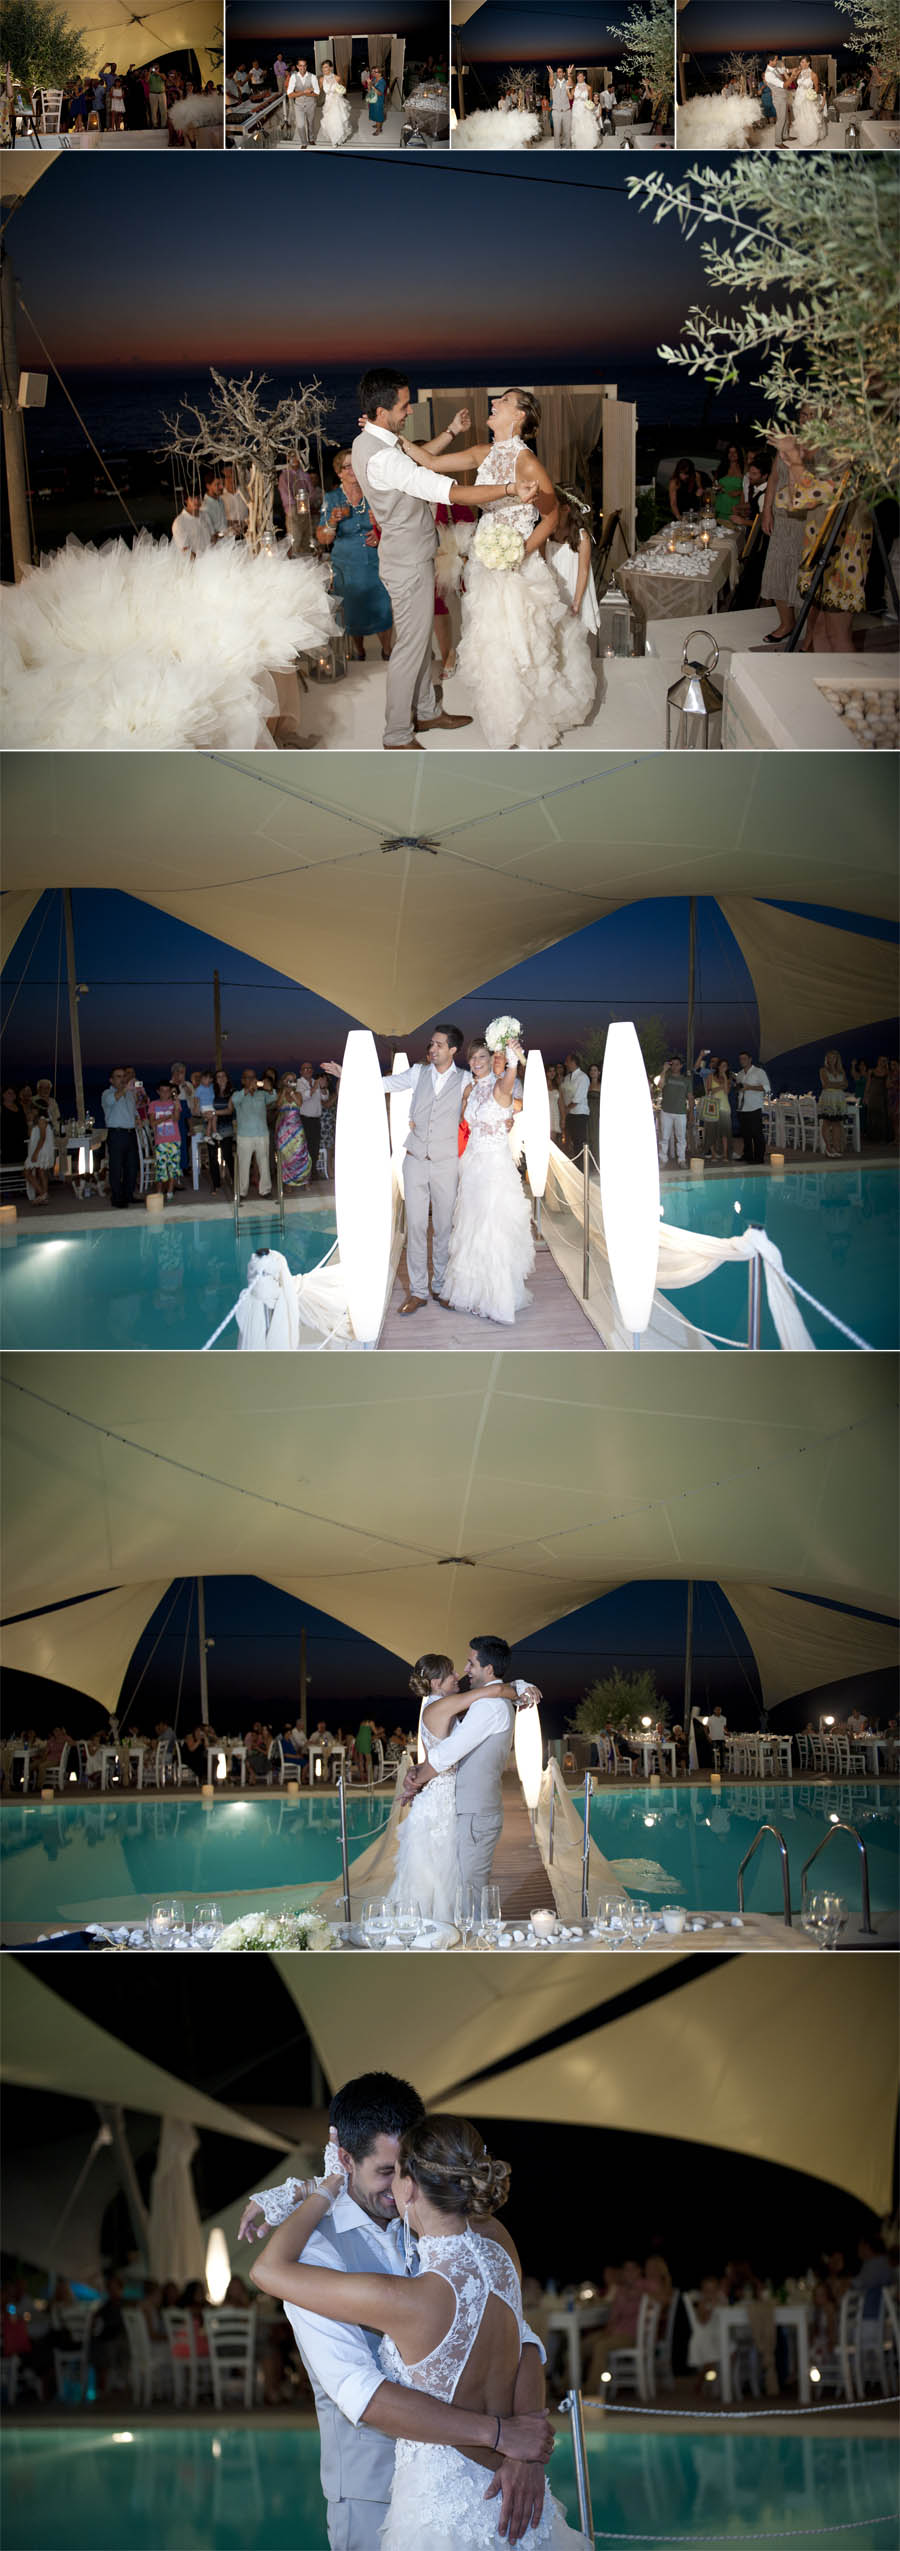 Greece-Lefkada-Wedding-096-copy-7